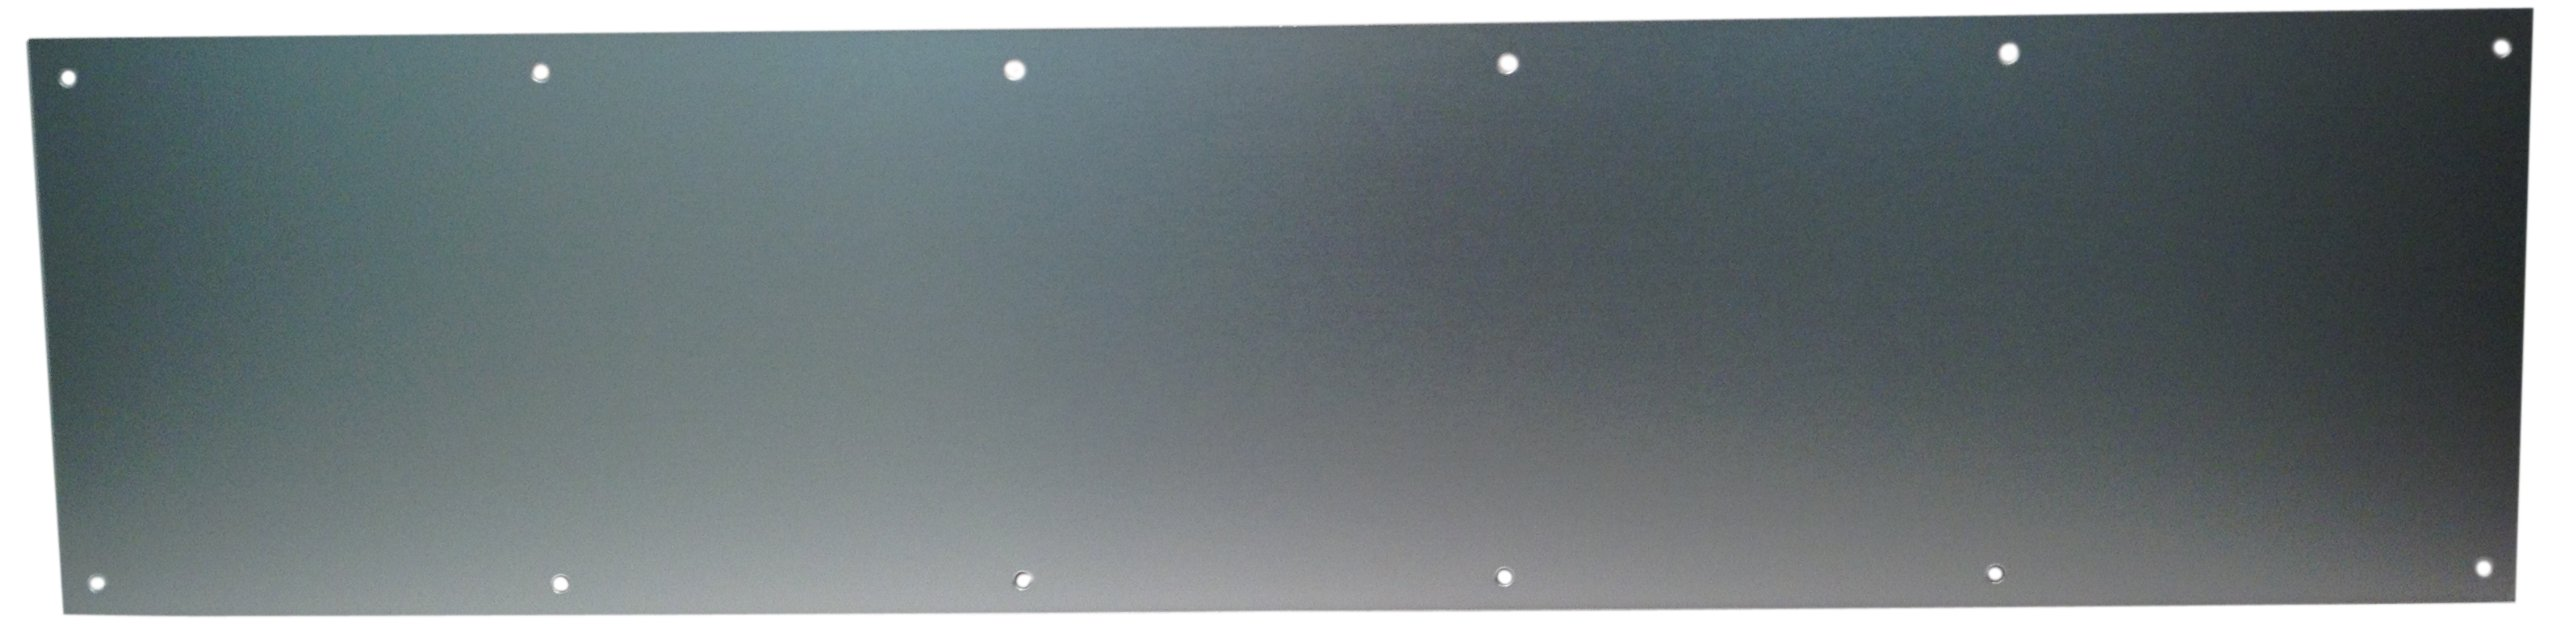 4 Width x 16 Height Don-Jo 7120 Aluminum Pull Plate with 1 Round Pull Satin Anodized Aluminum Finish